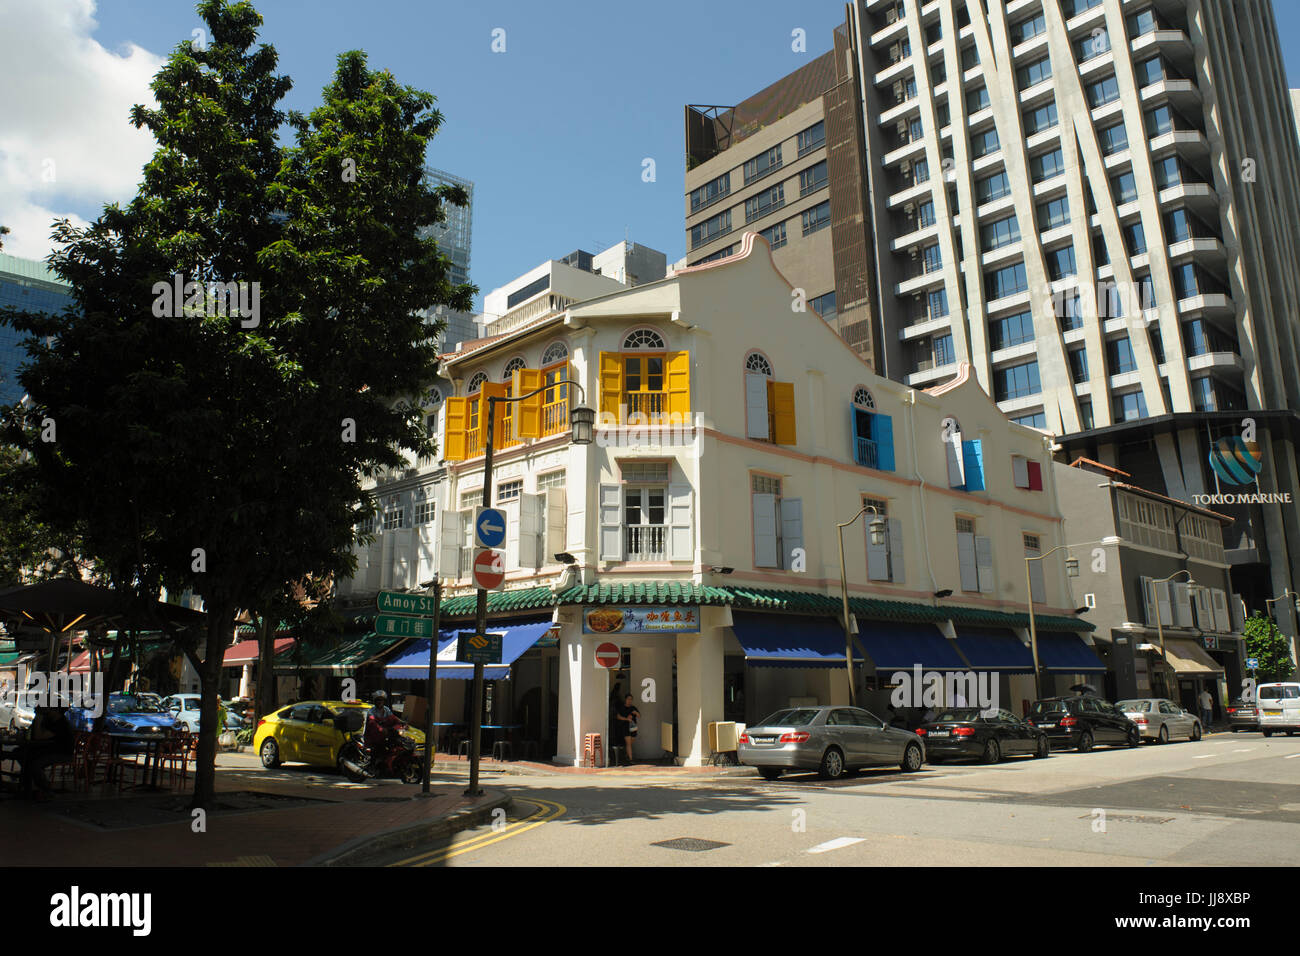 Traditional three-storey shophouse buildings on corner of Telok Ayer Street and Amoy Street, Singapore - Stock Image